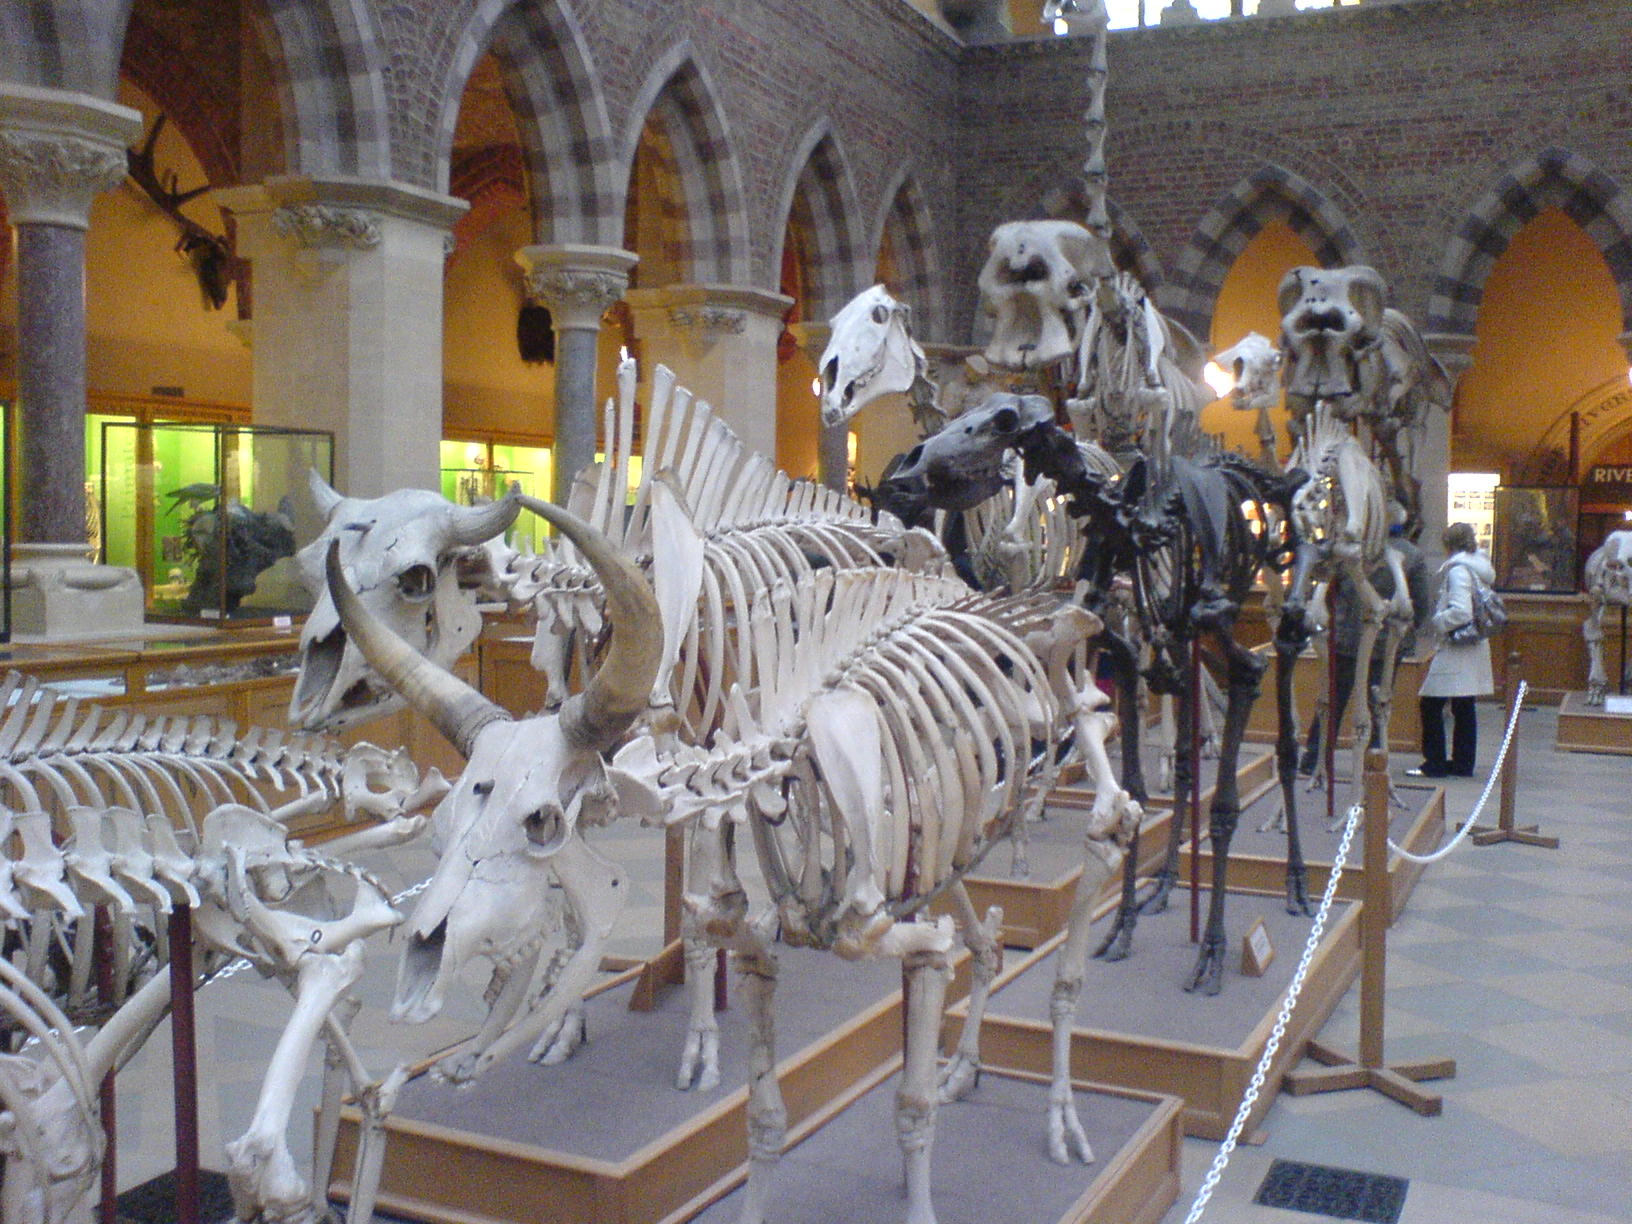 mammal_skeletons_oxford_university_museum_of_natural_history_oxford_england_-_20070128